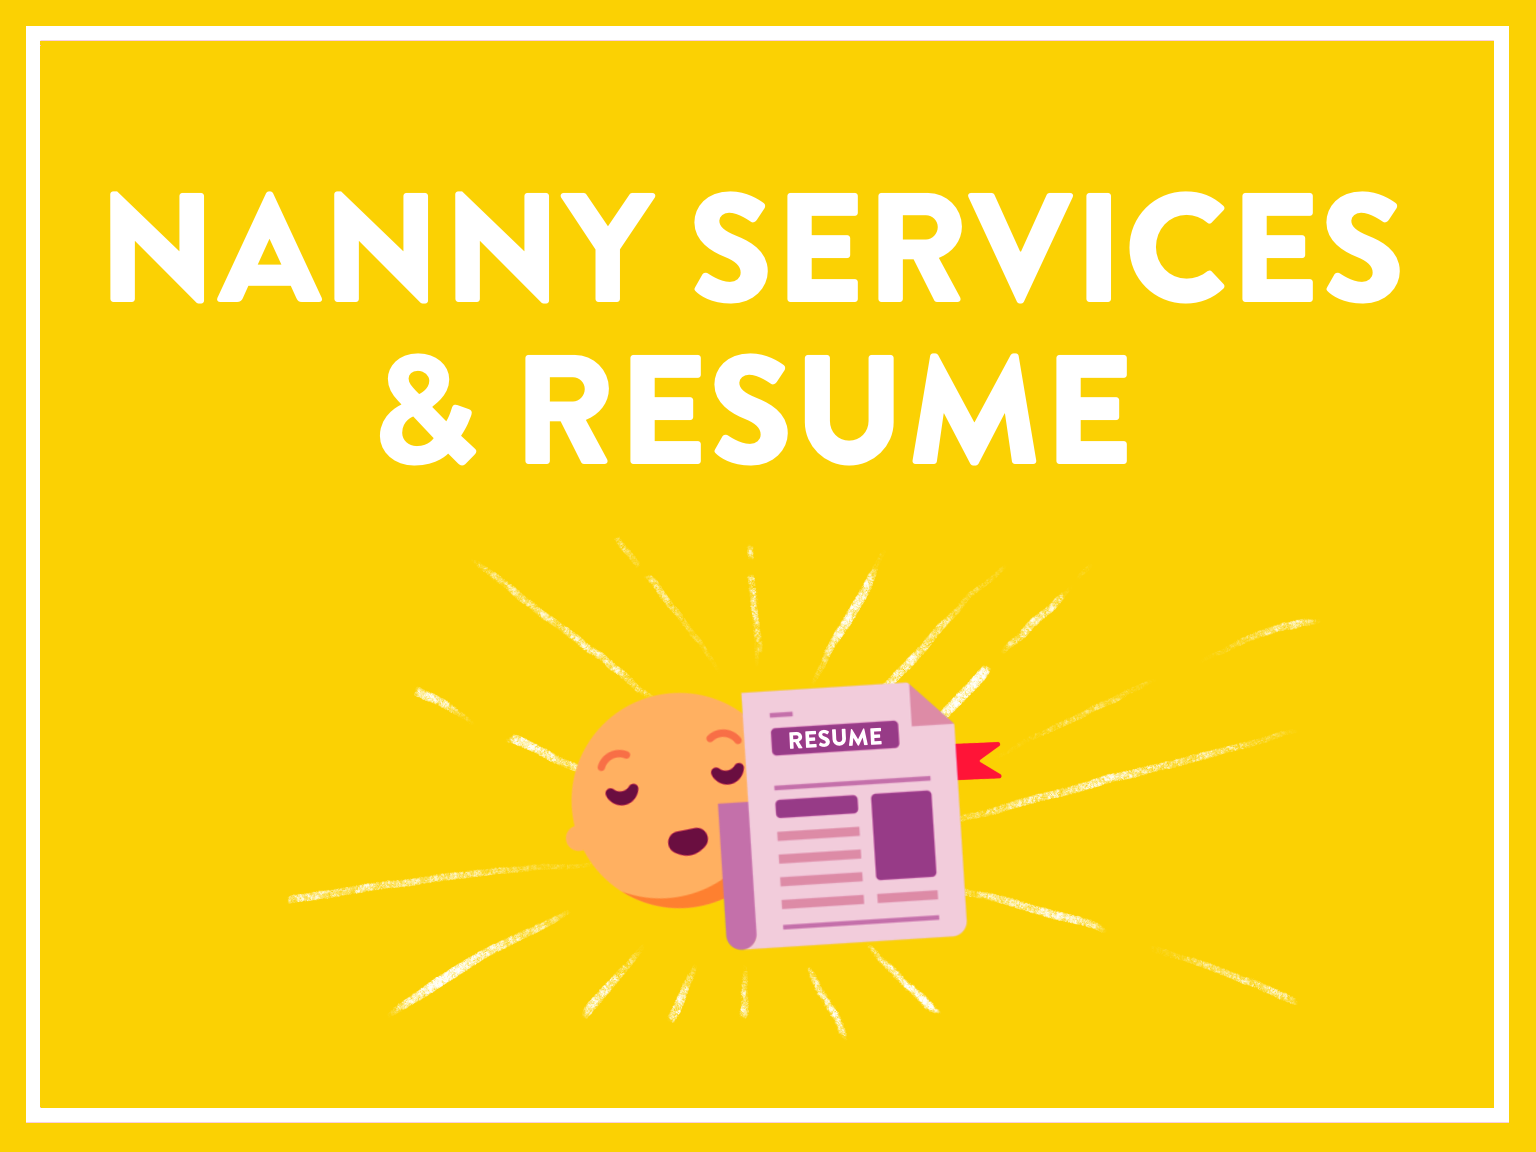 Nanny Services & Resume